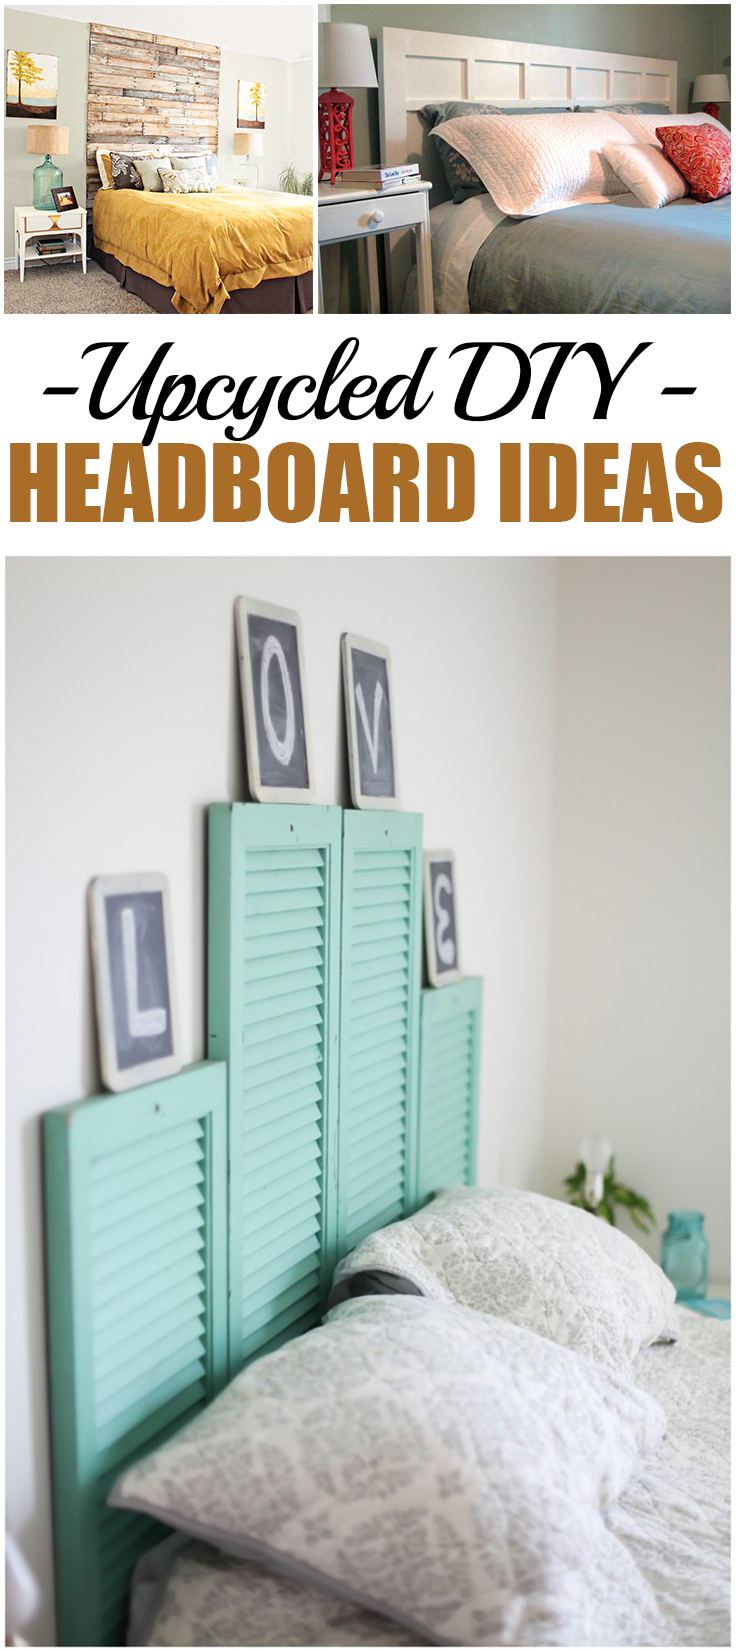 Upcycled Diy Headboard Ideas And Tutorials Picky Stitch